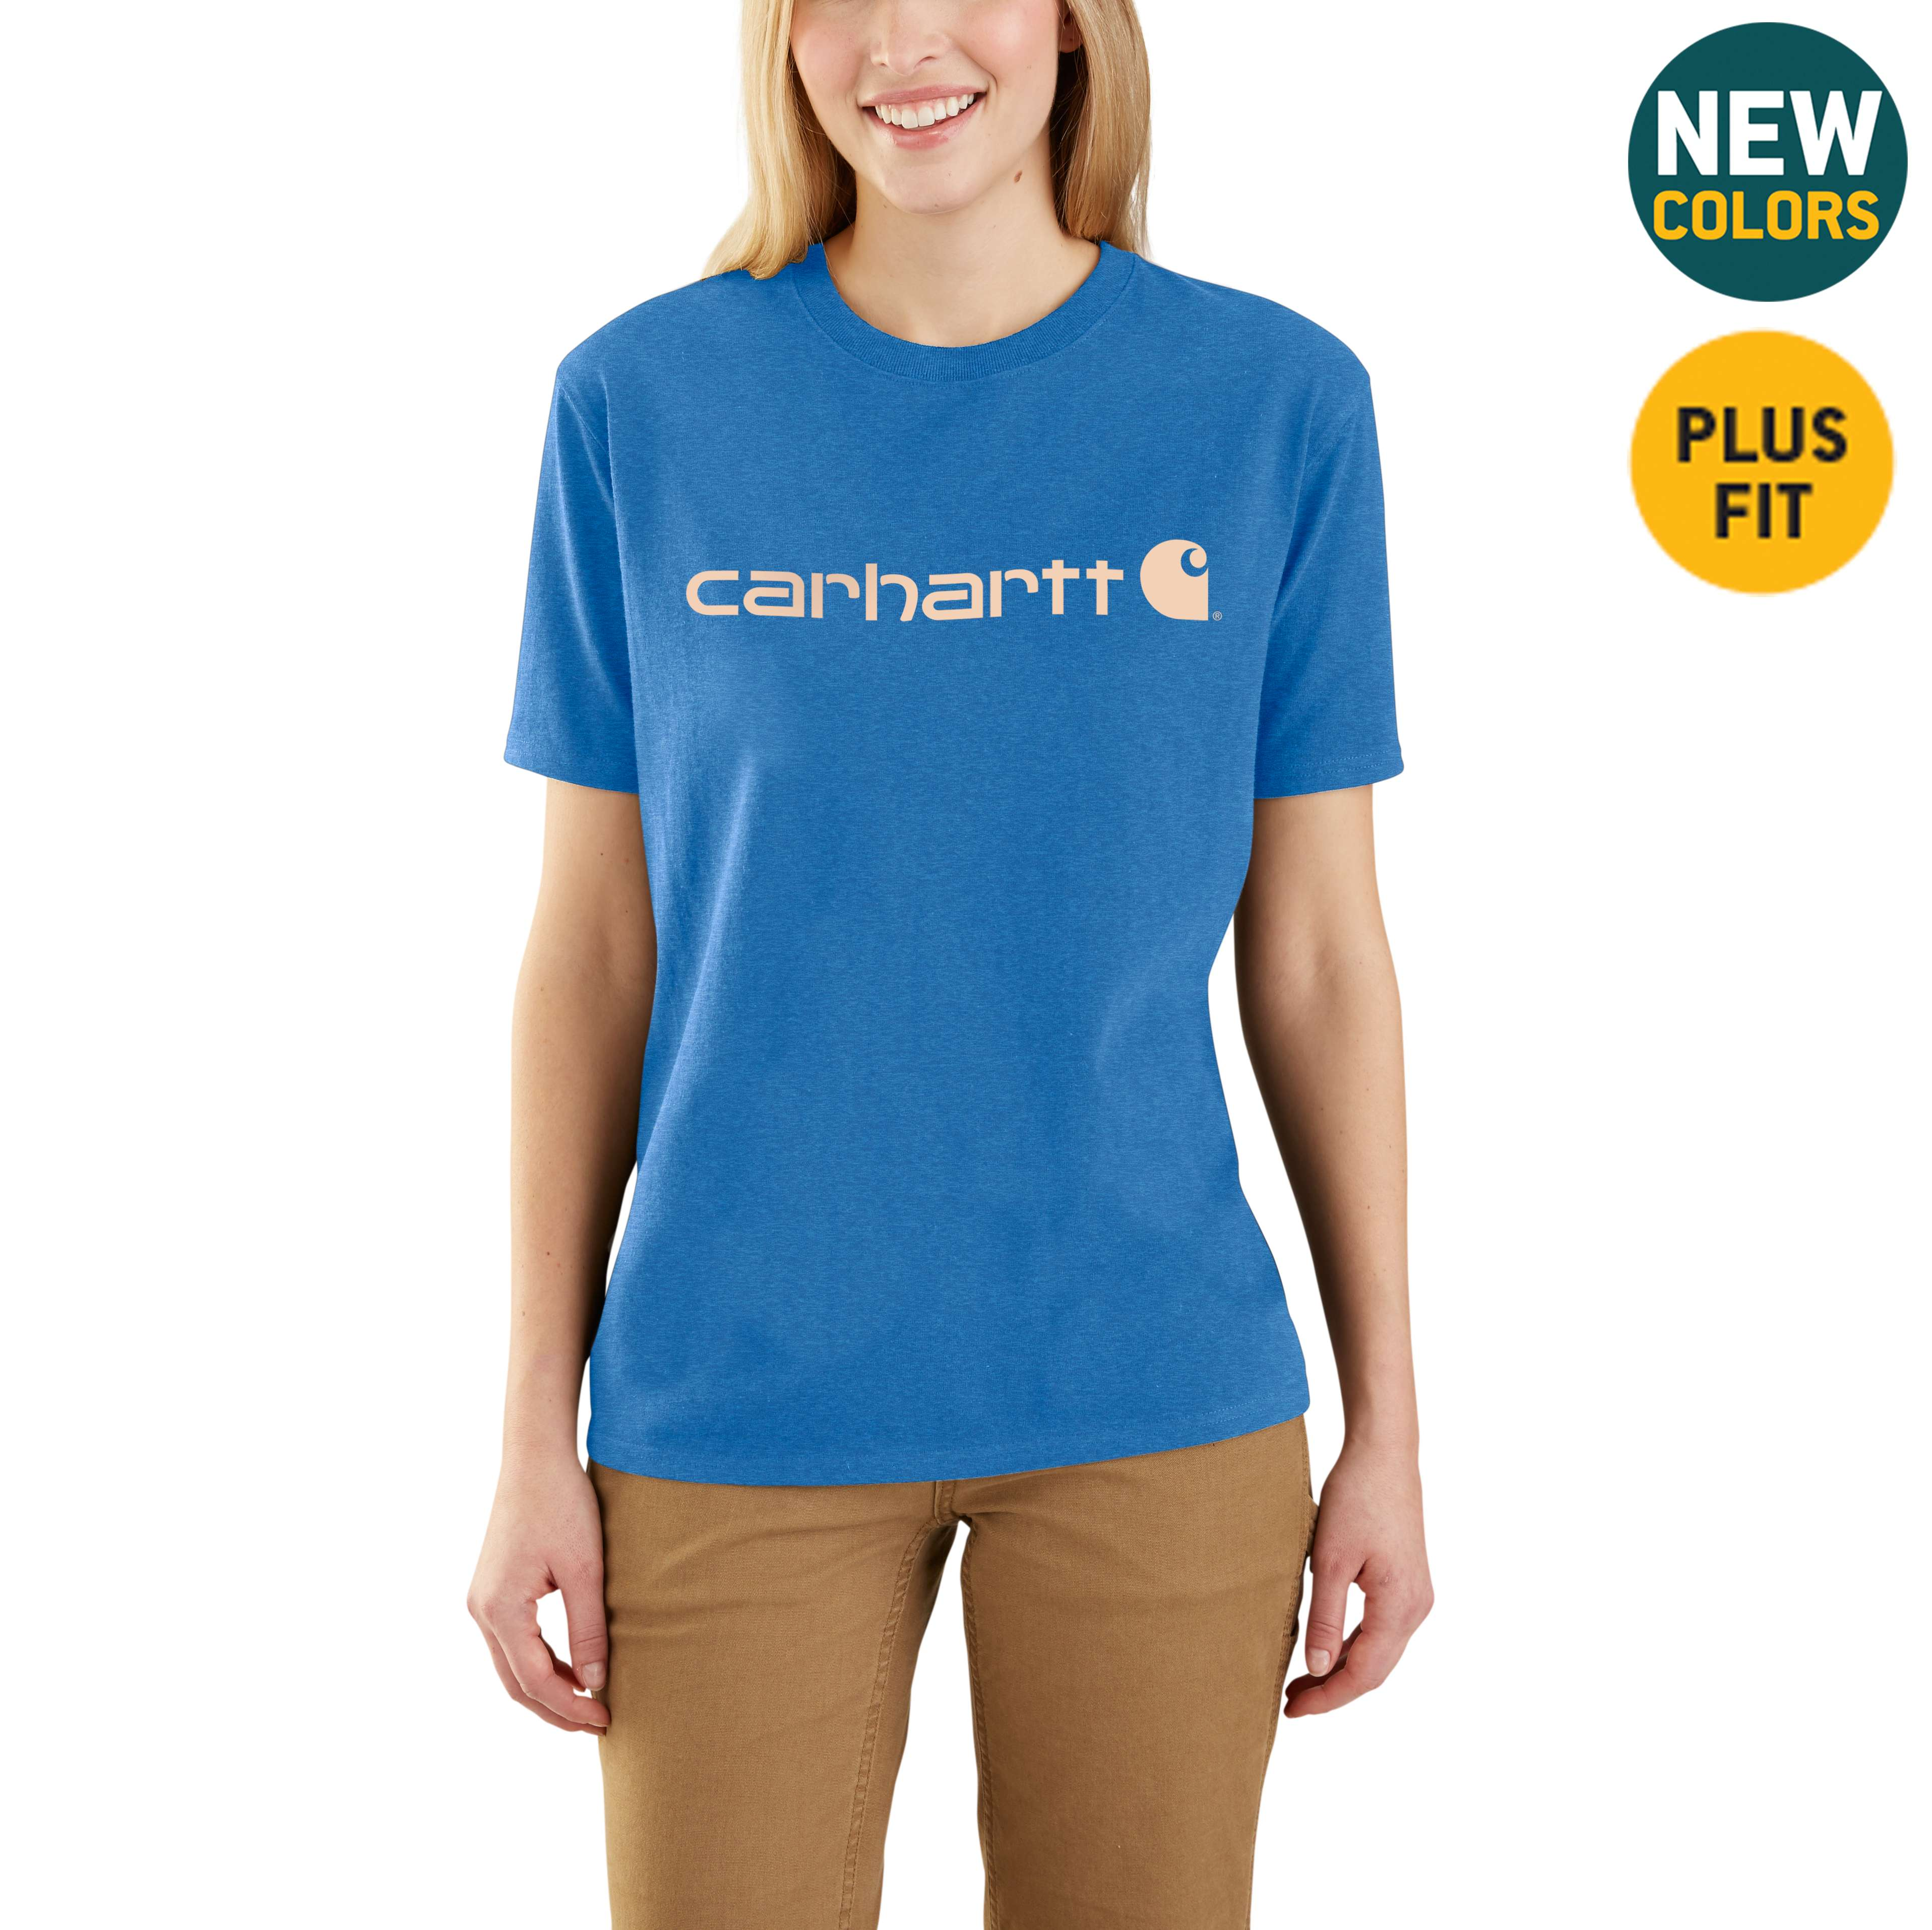 Picture of WK195 Workwear Logo Short Sleeve T-Shirt in Light Cobalt Heather